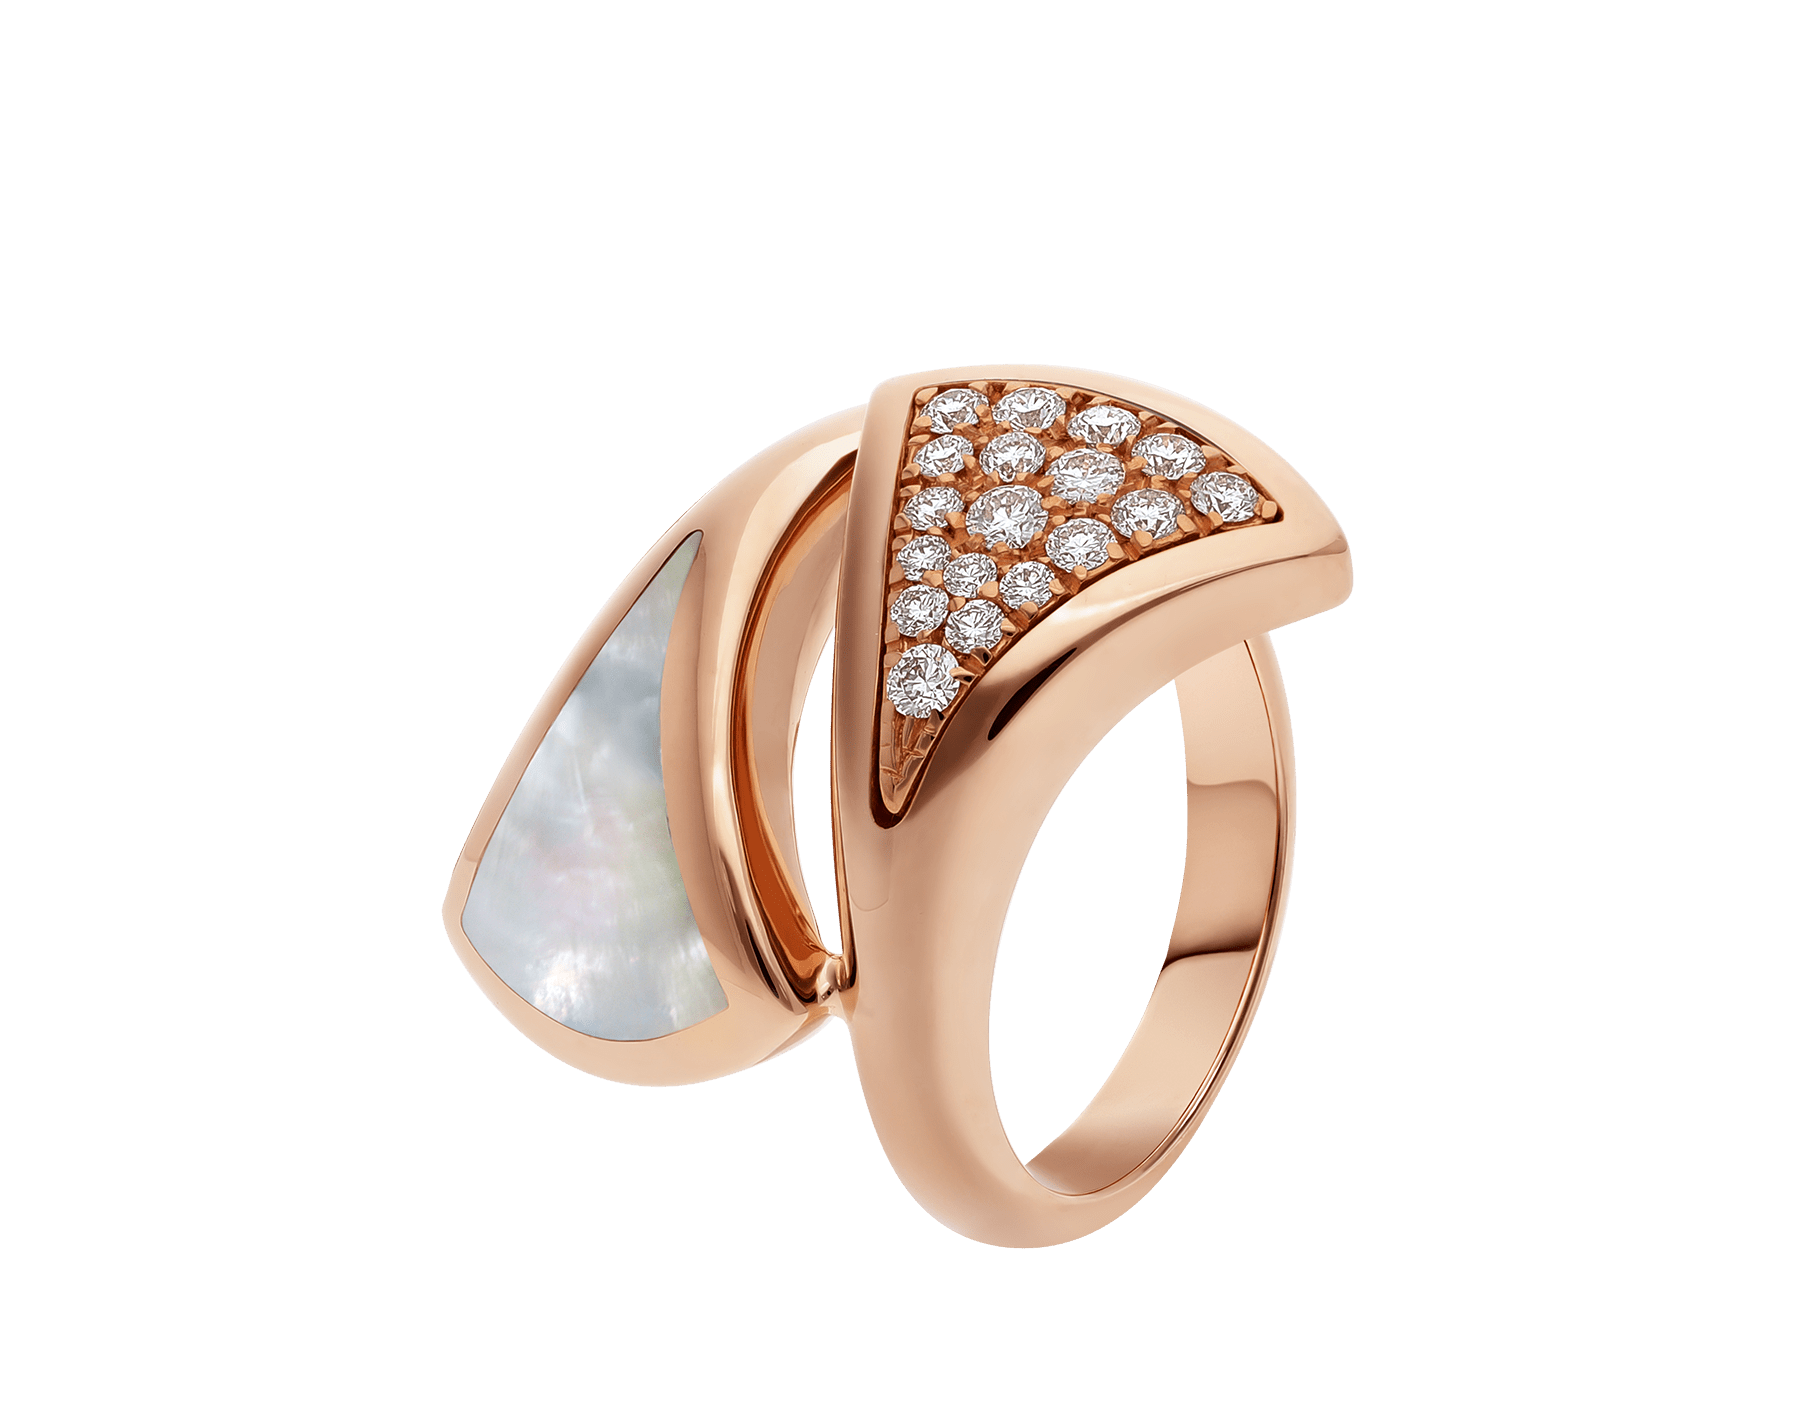 DIVAS' DREAM ring in 18 kt rose gold, set with mother-of-pearl and pavé diamonds. AN857123 image 1